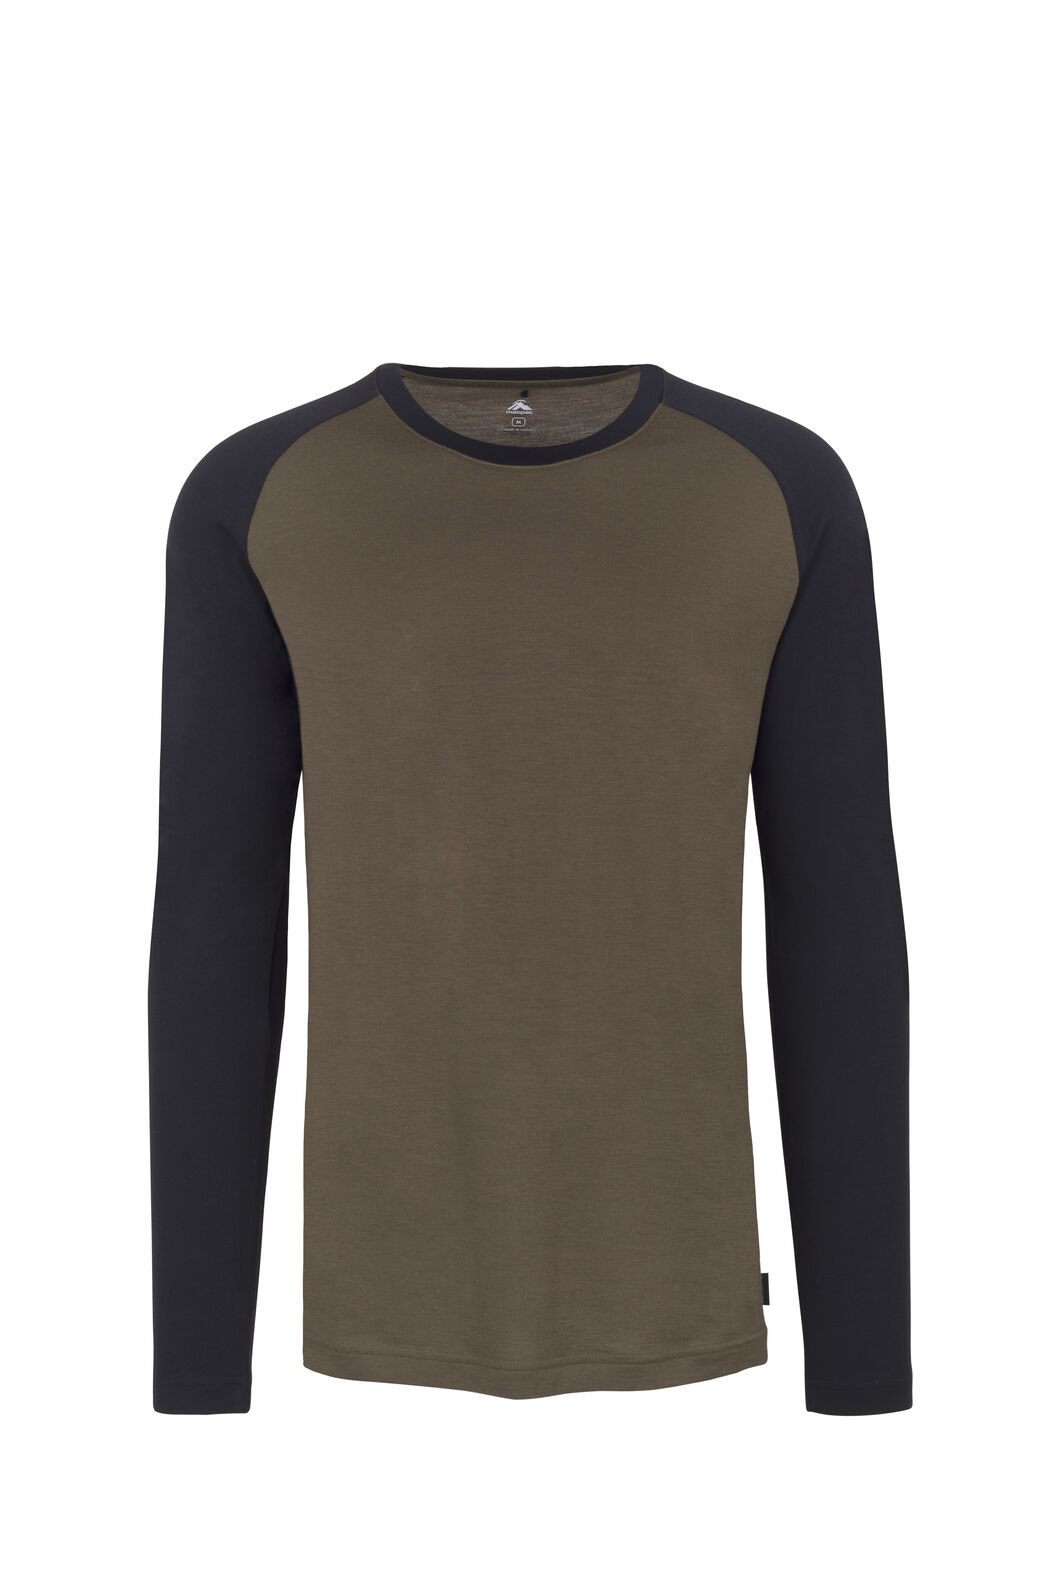 Macpac 180 Merino Long Sleeve Crew - Men's, Black/Military Olive, hi-res